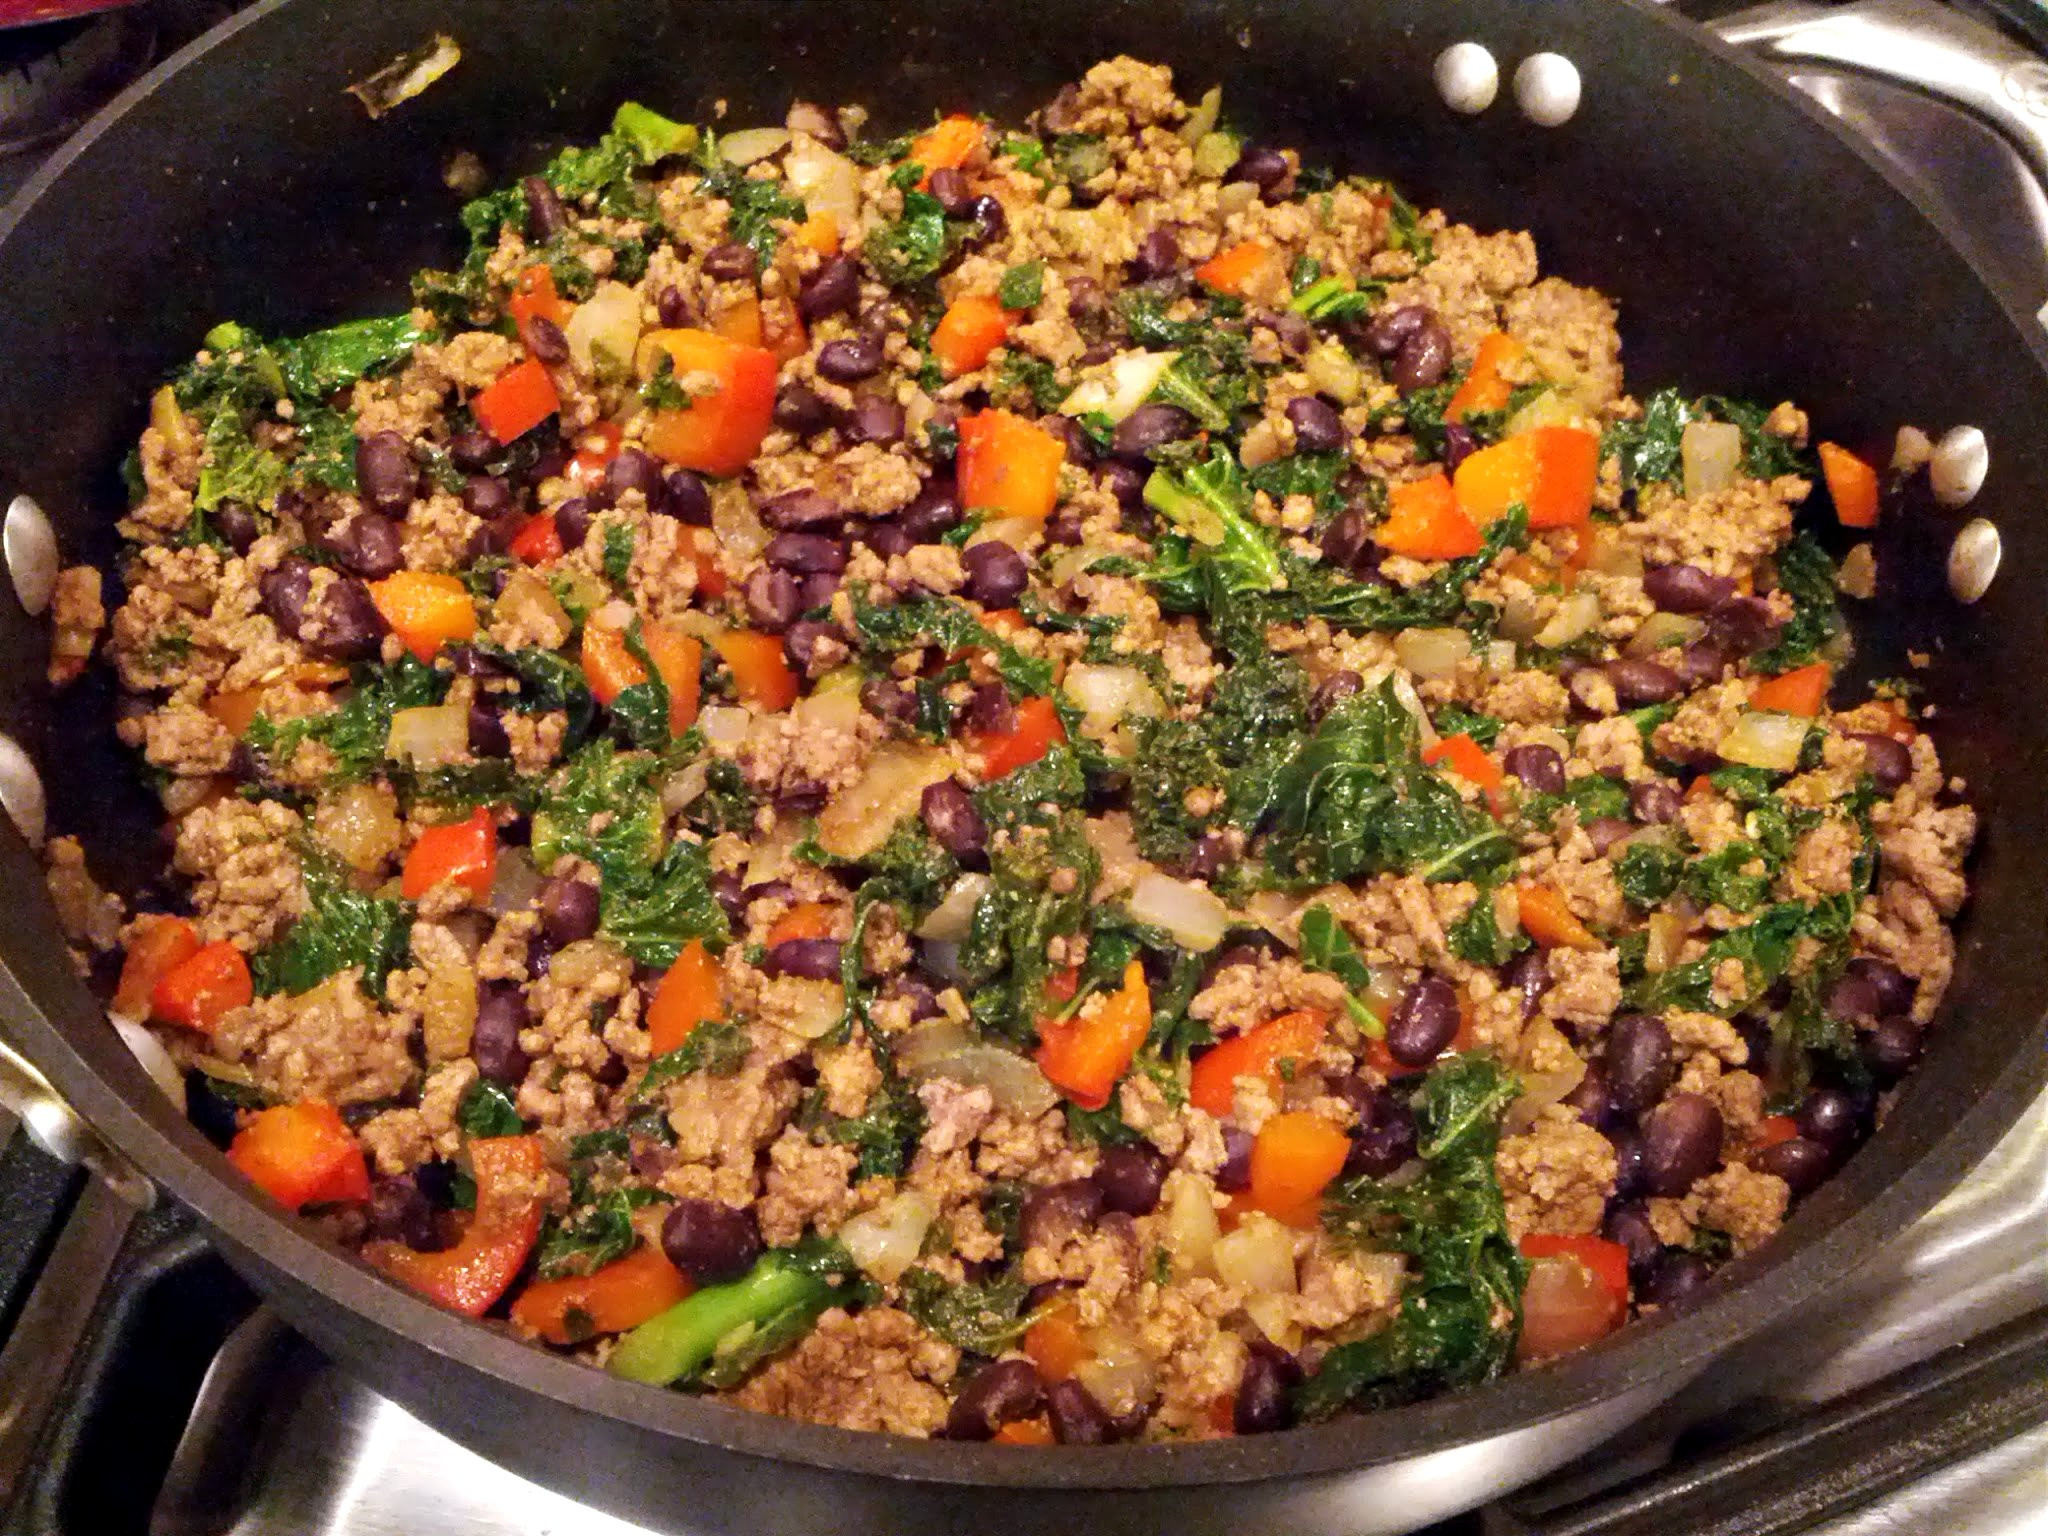 Recipe With Ground Turkey  Kale and Ground Beef Turkey Taco Filling